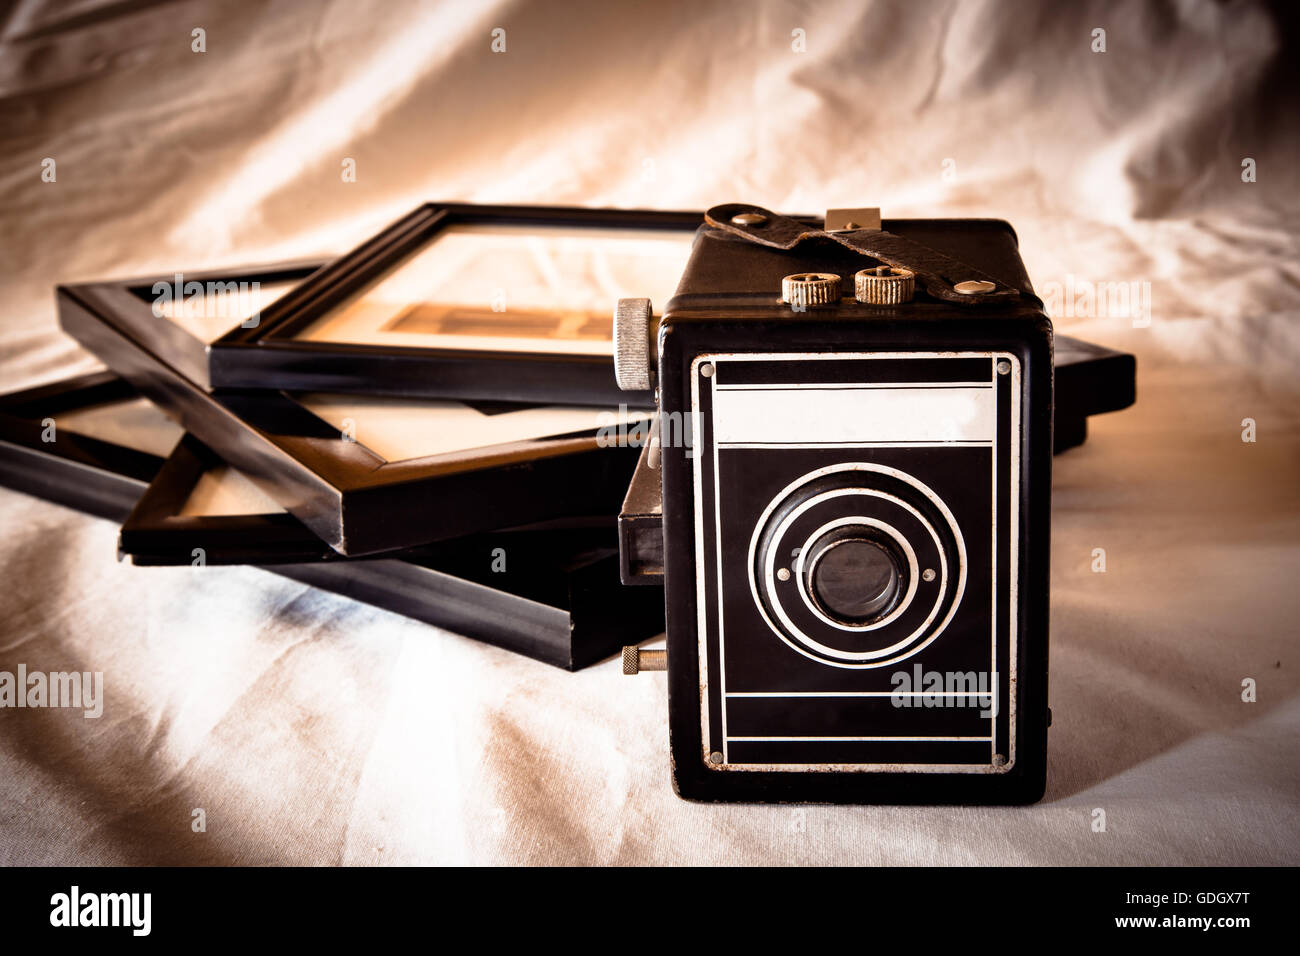 Vintage style film box camera with framed photographs and retro tone - Stock Image